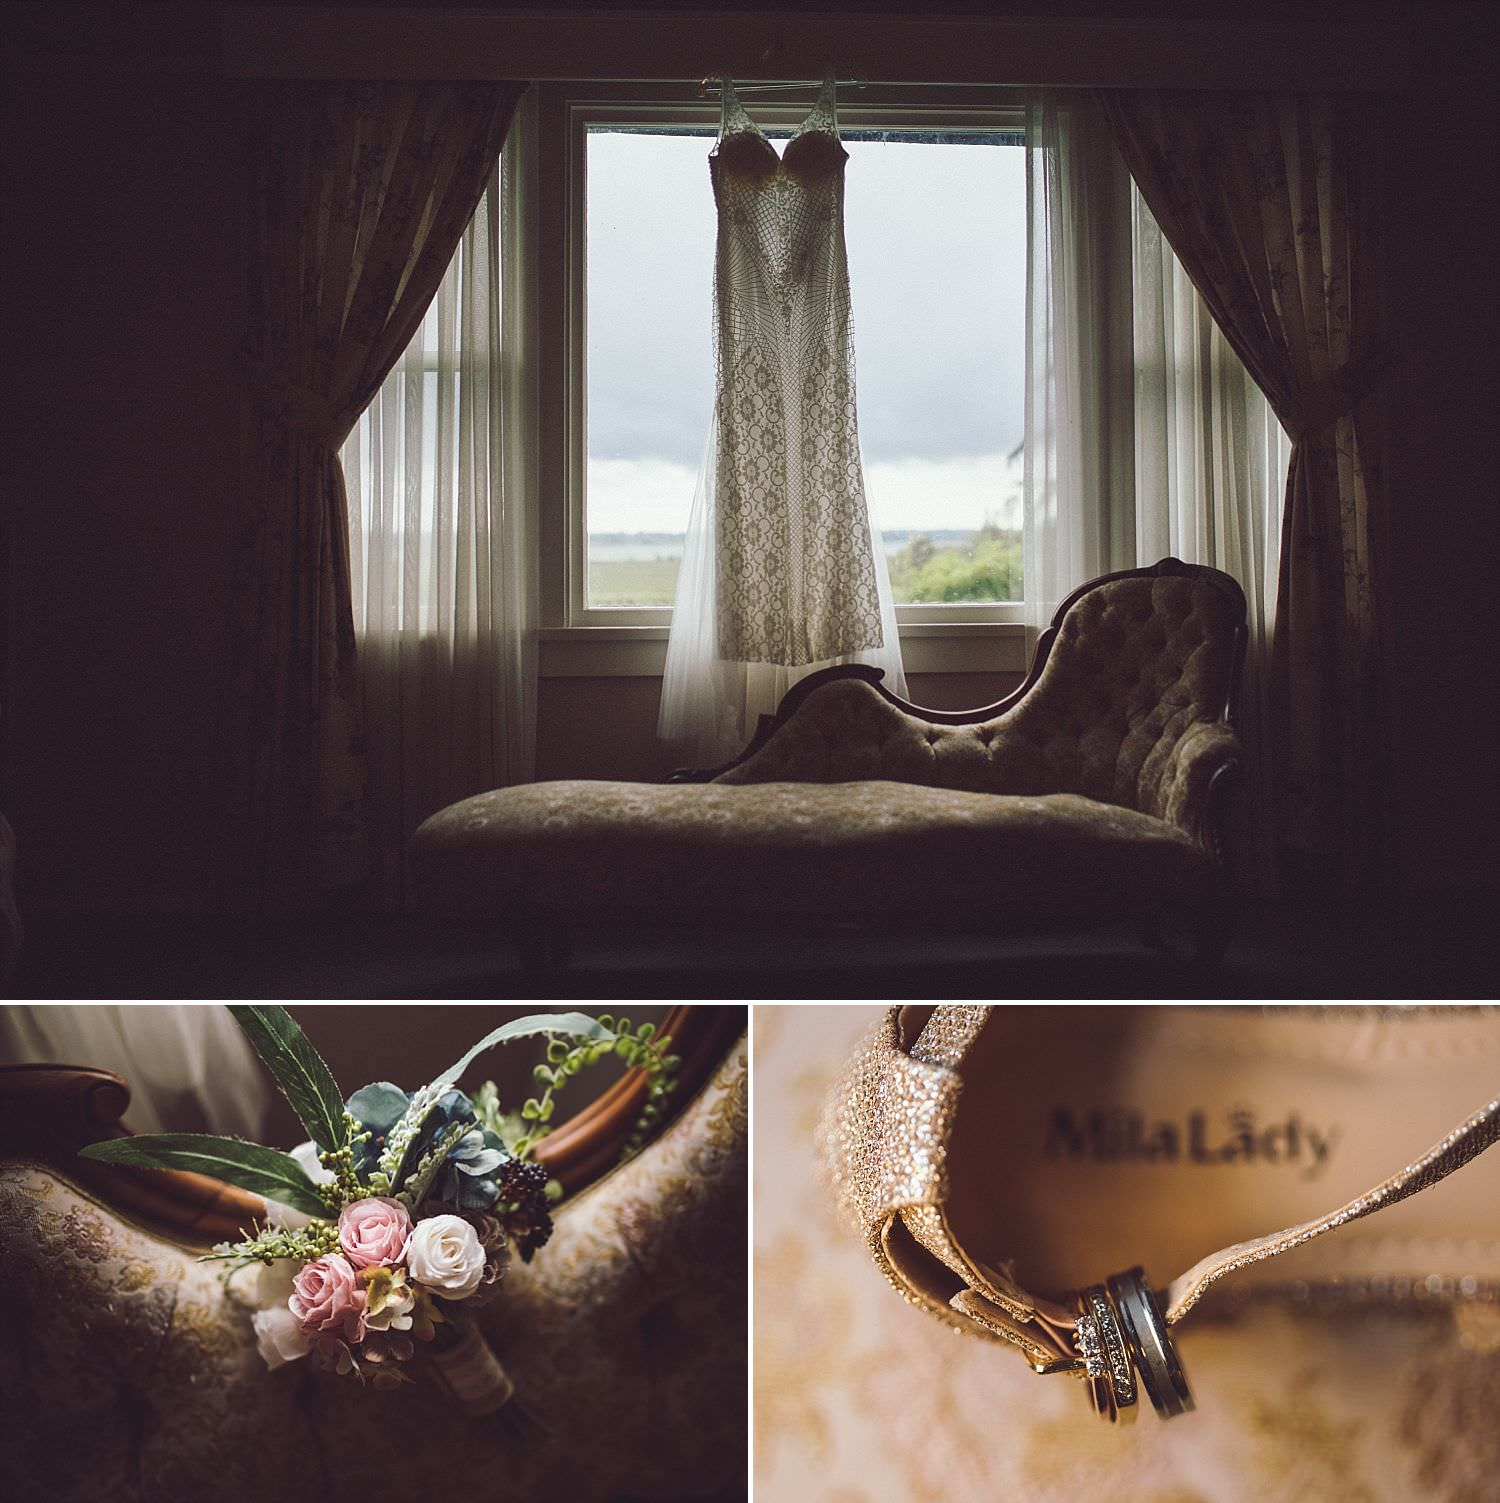 Vancouver Wedding Photographer Andrew Lukianiuk captures wedding details including dress, flowers, and rings